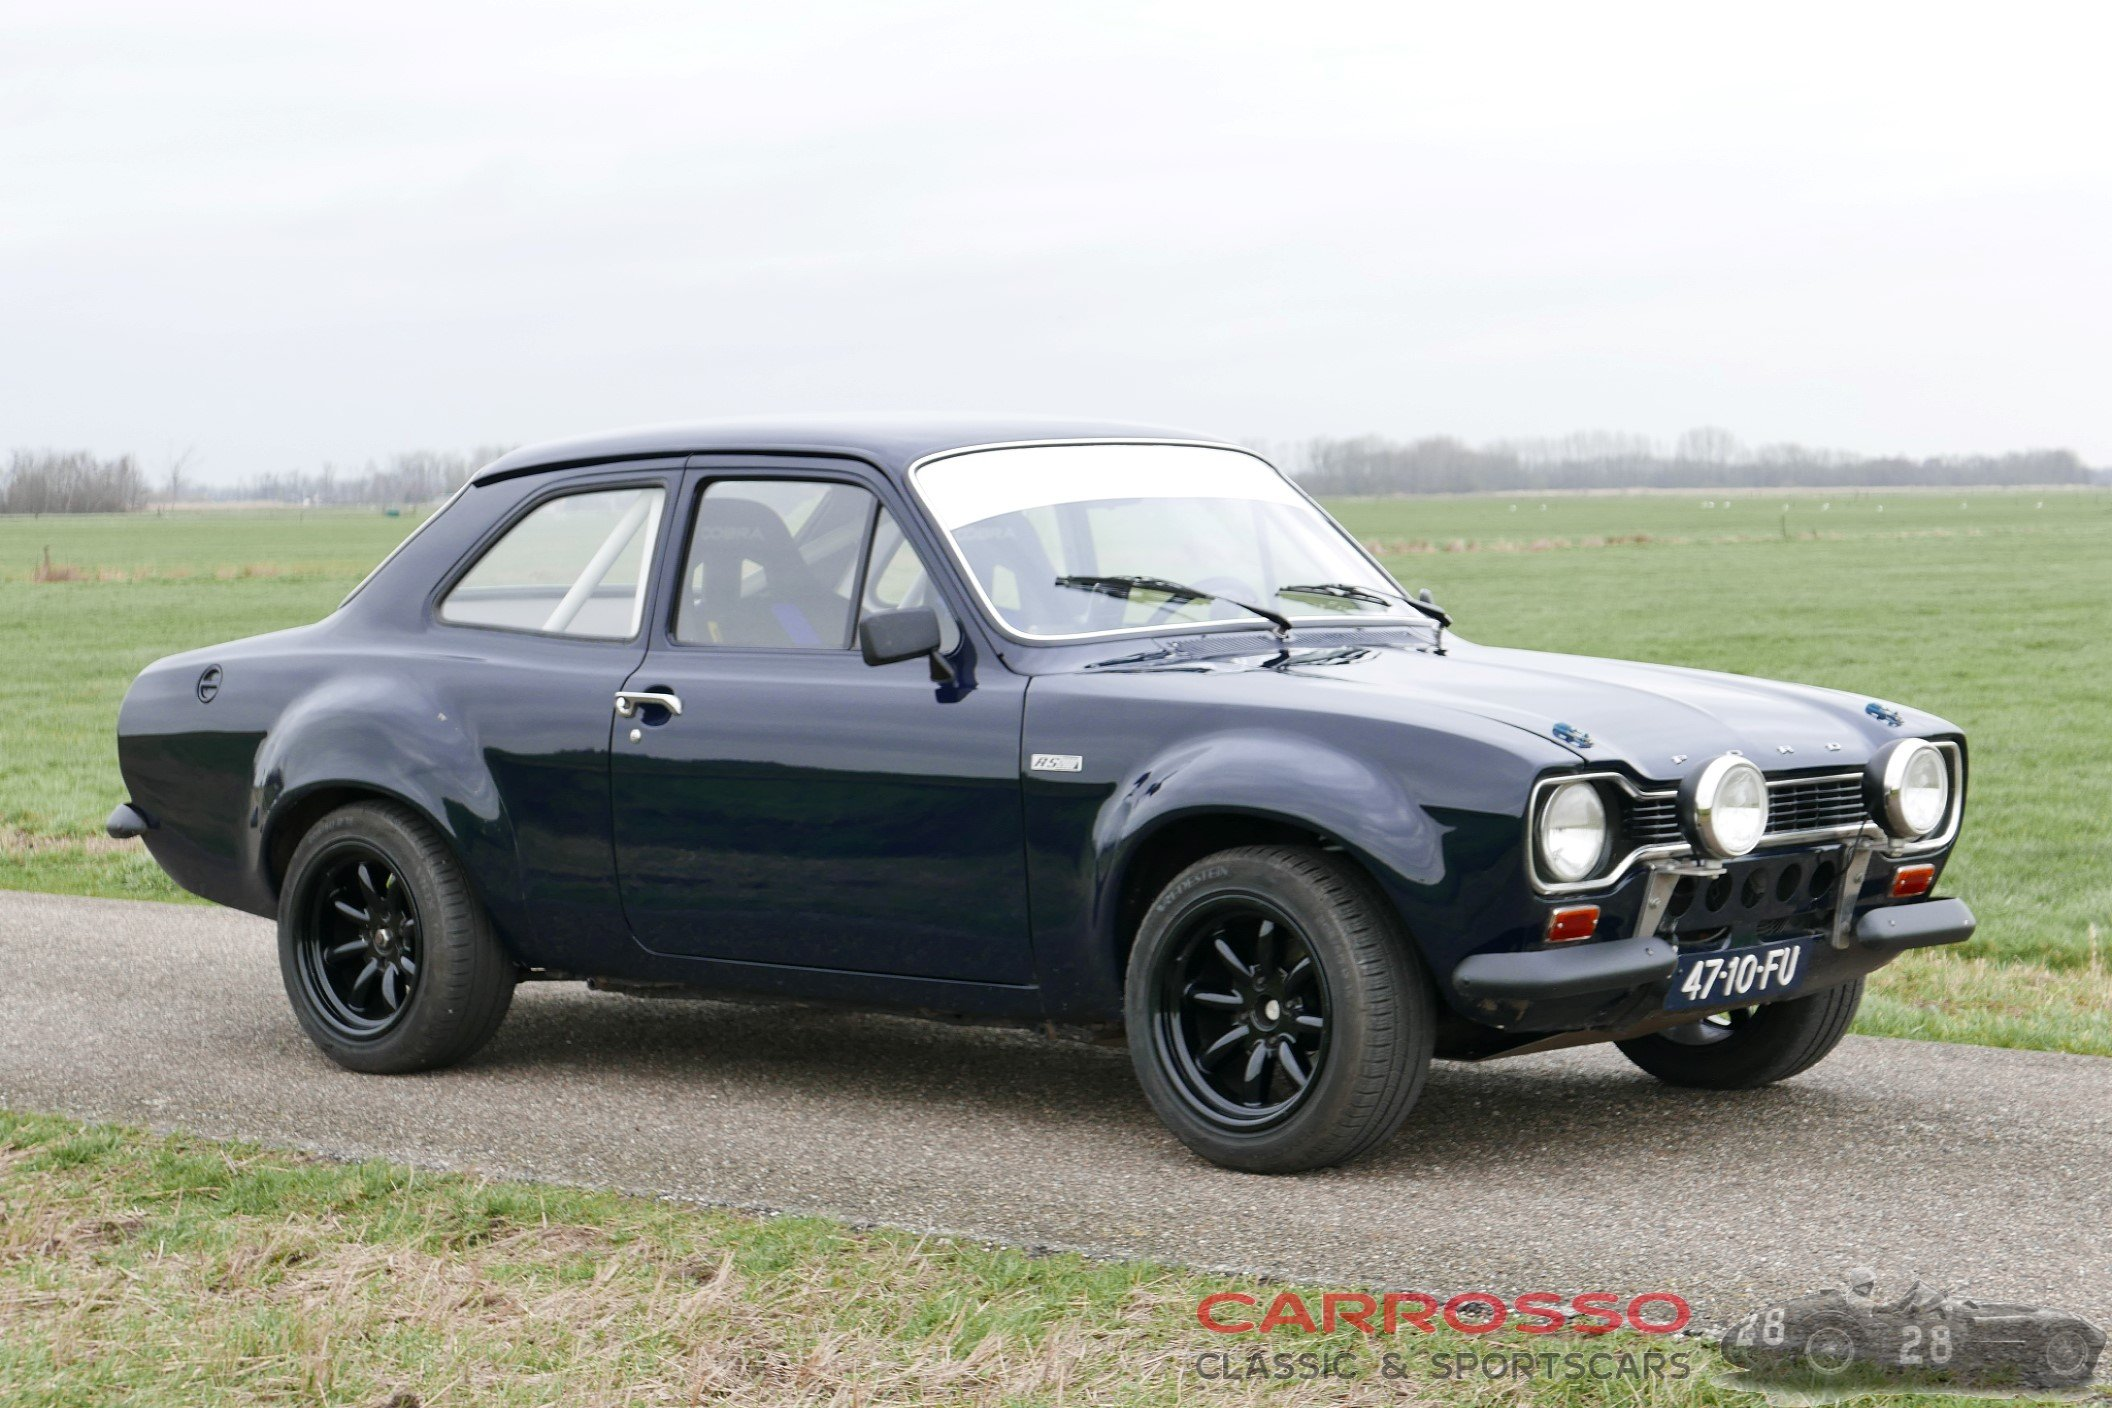 12Ford Escort Rally (8)